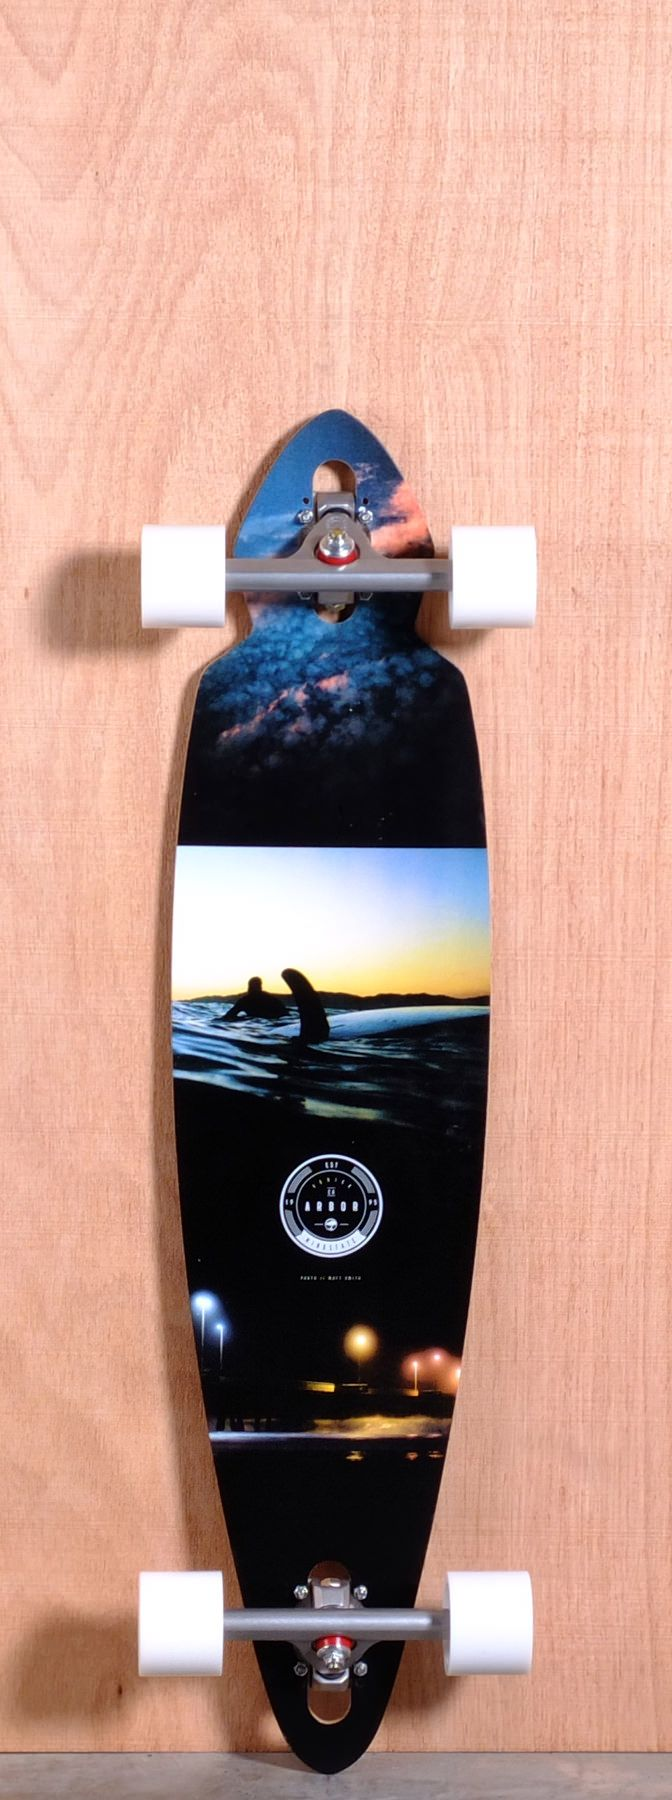 The Arbor Mindstate Koa Longboard Complete is designed for Carving and Cruising. Ships fully assembled and ready to skate!